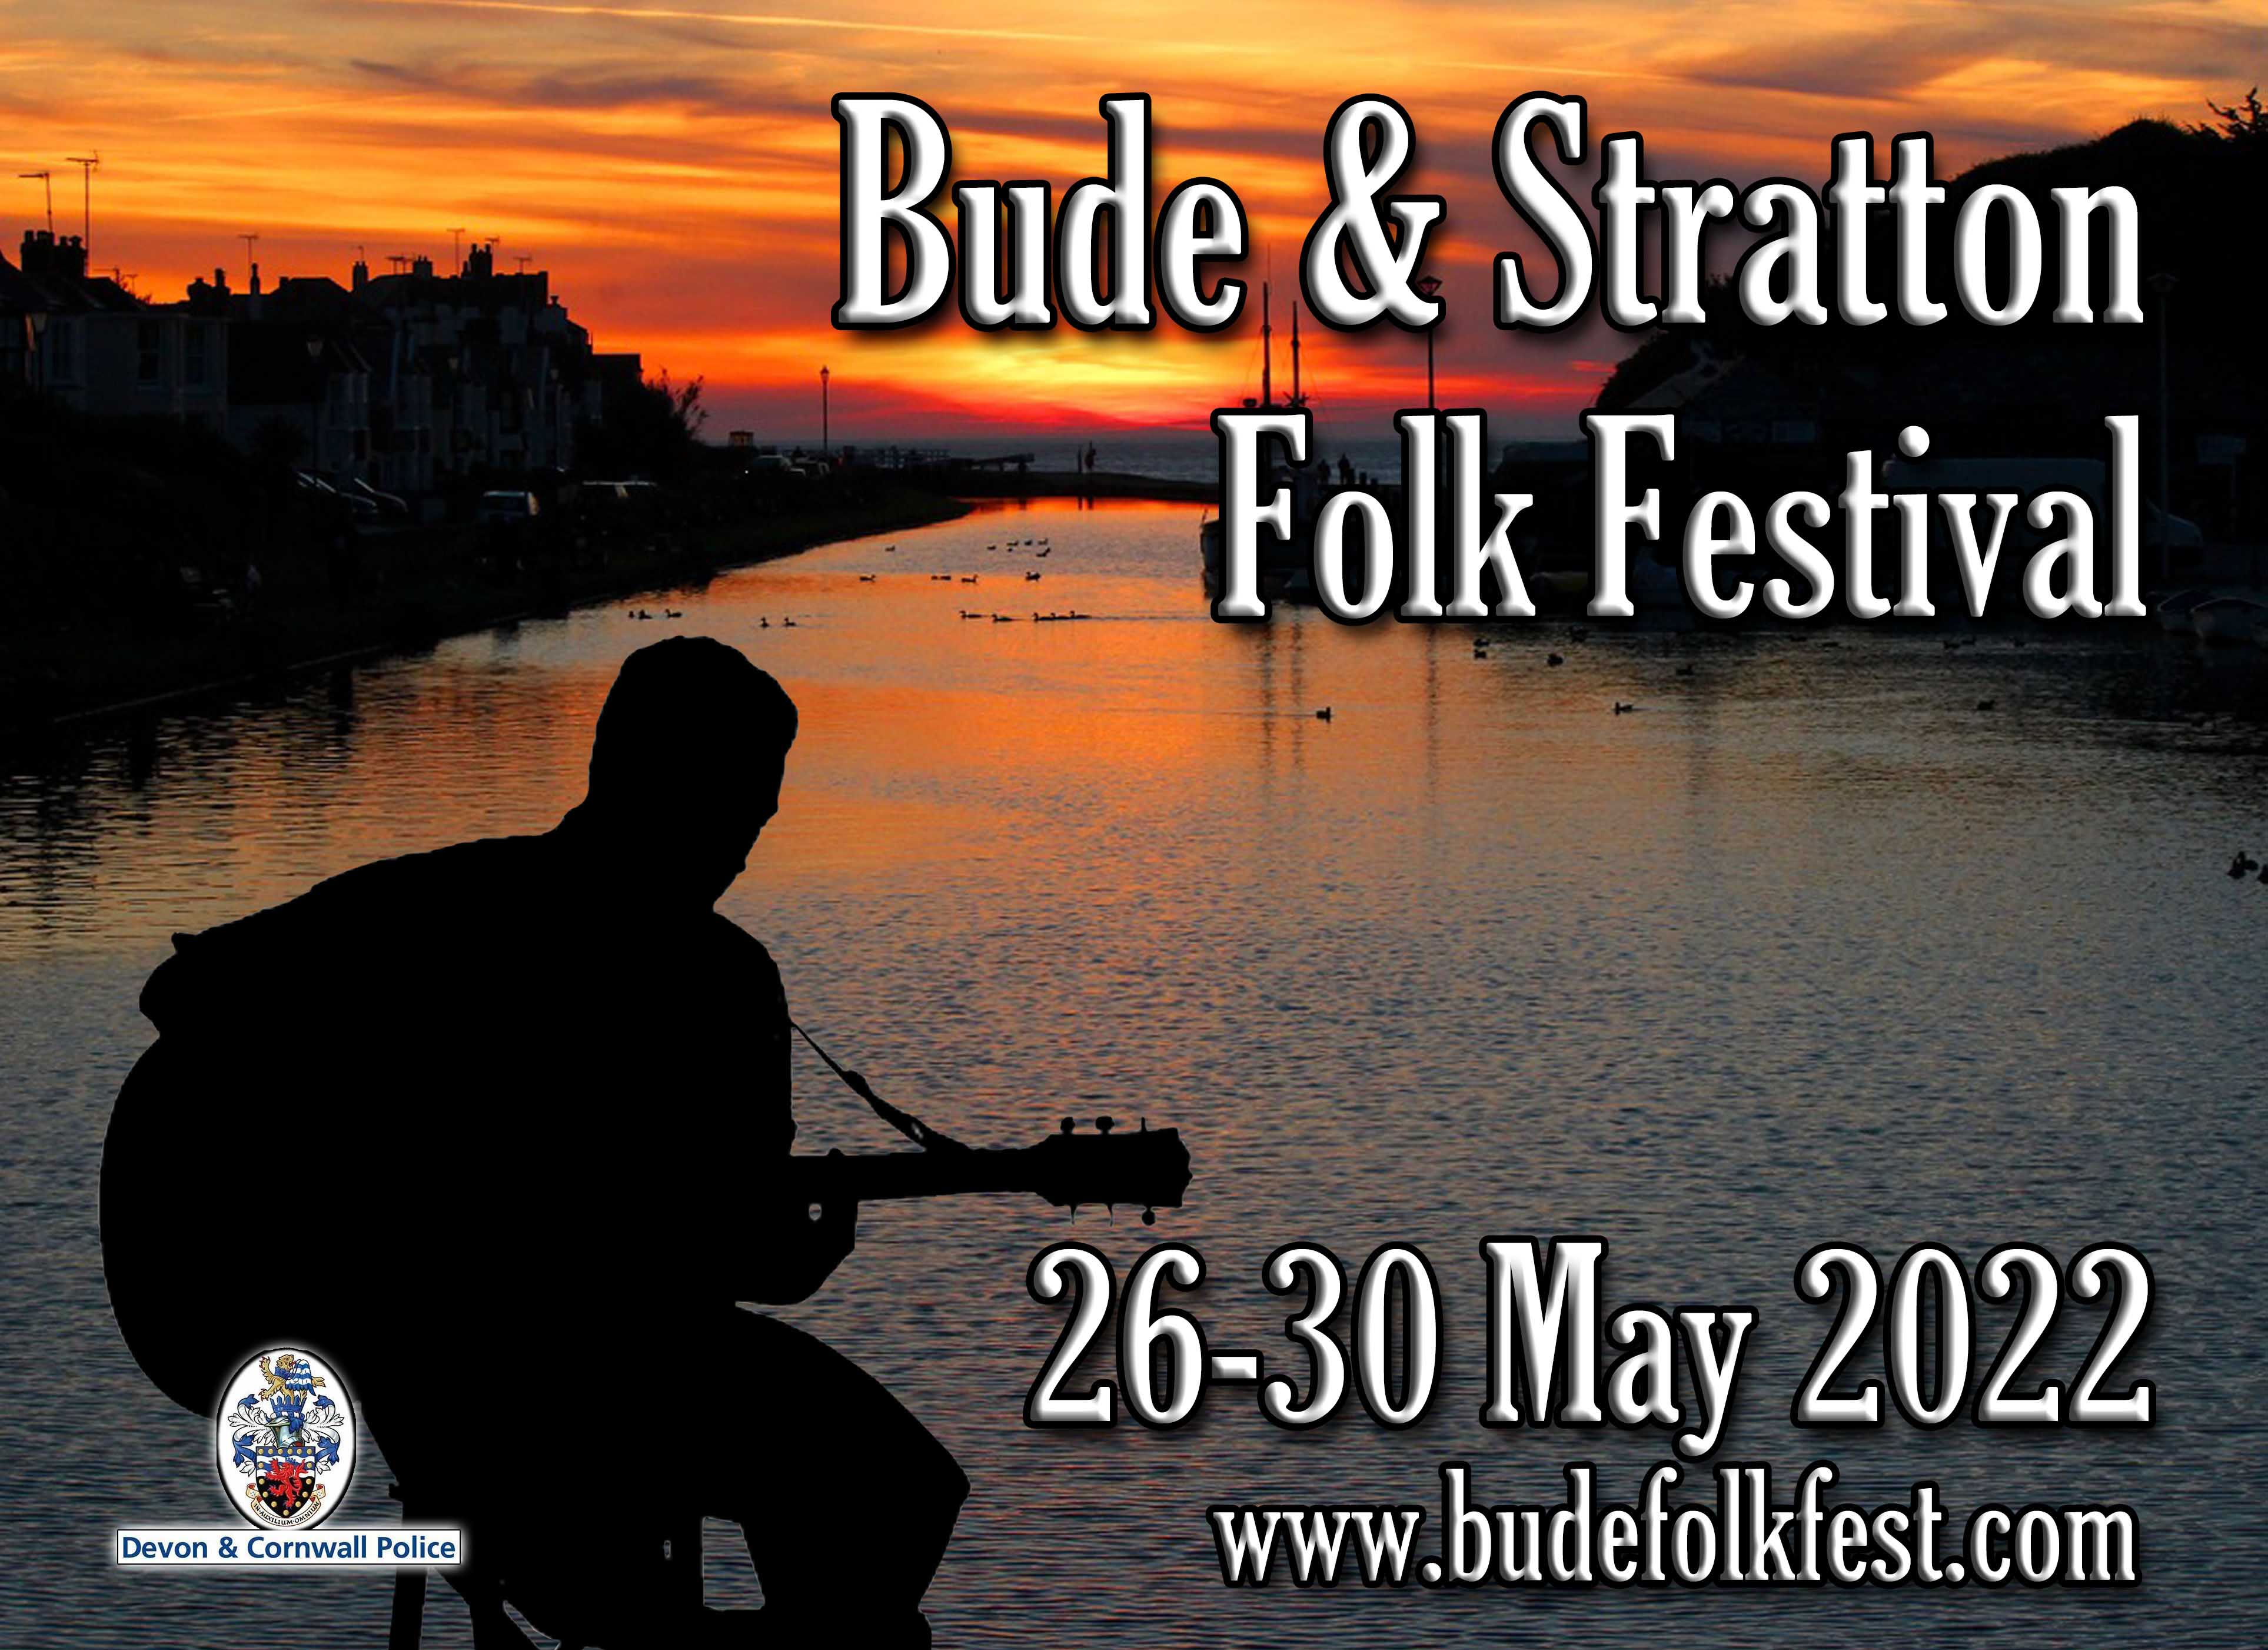 Image of Bude Canal with festival date 22-25 May 2020